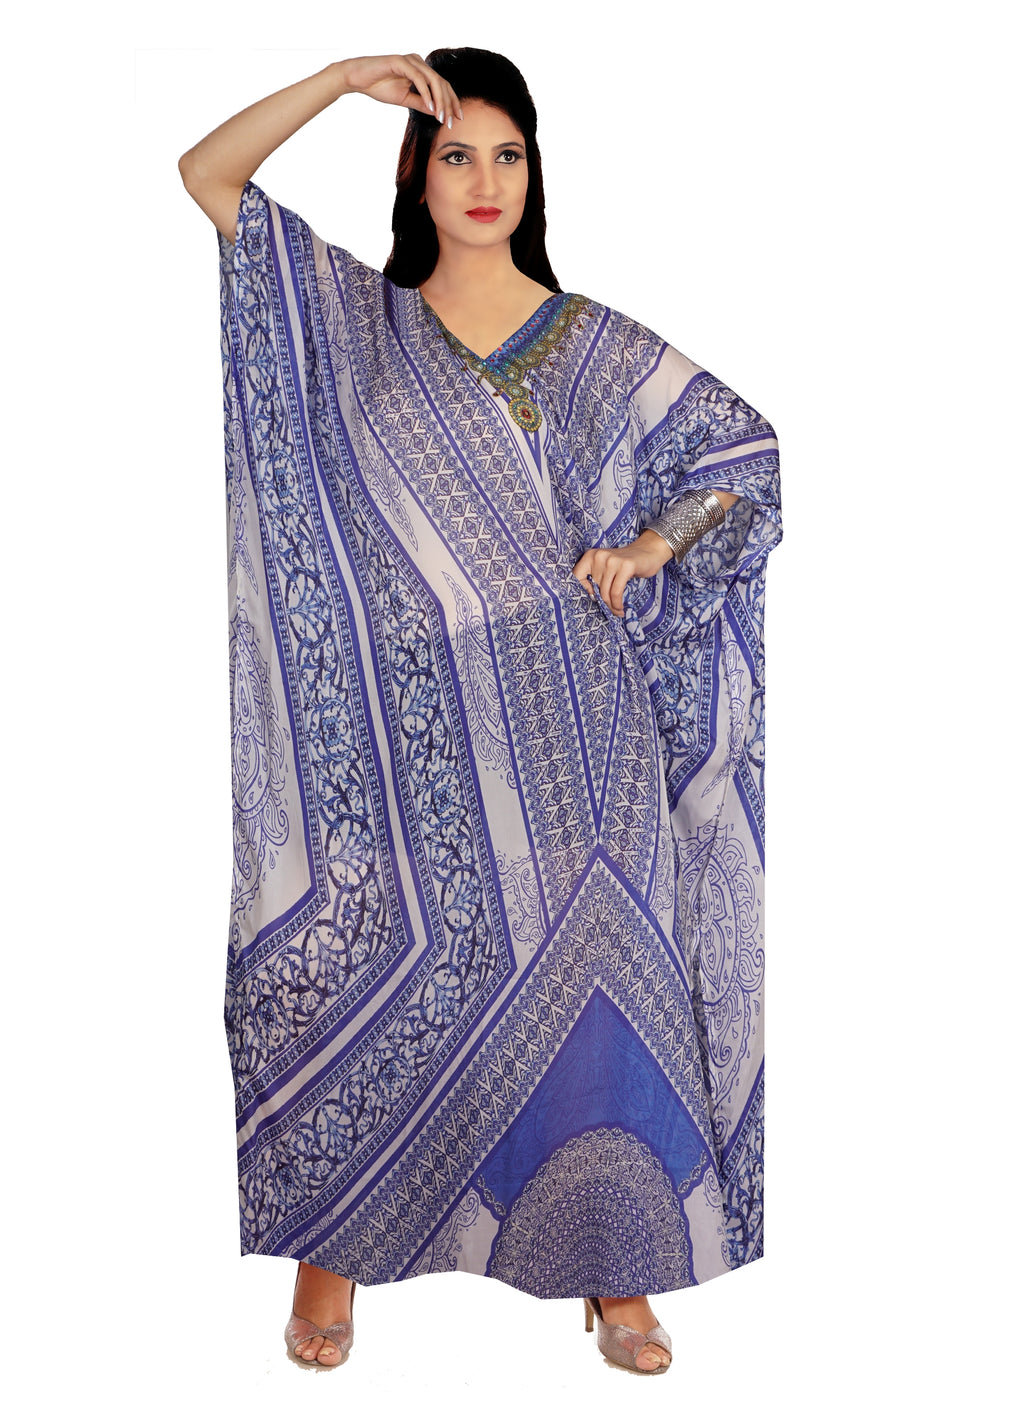 Kaftan for women kaftan for sale beach wear kaftan Beach wear dresses Resort wear for women - Silk kaftan